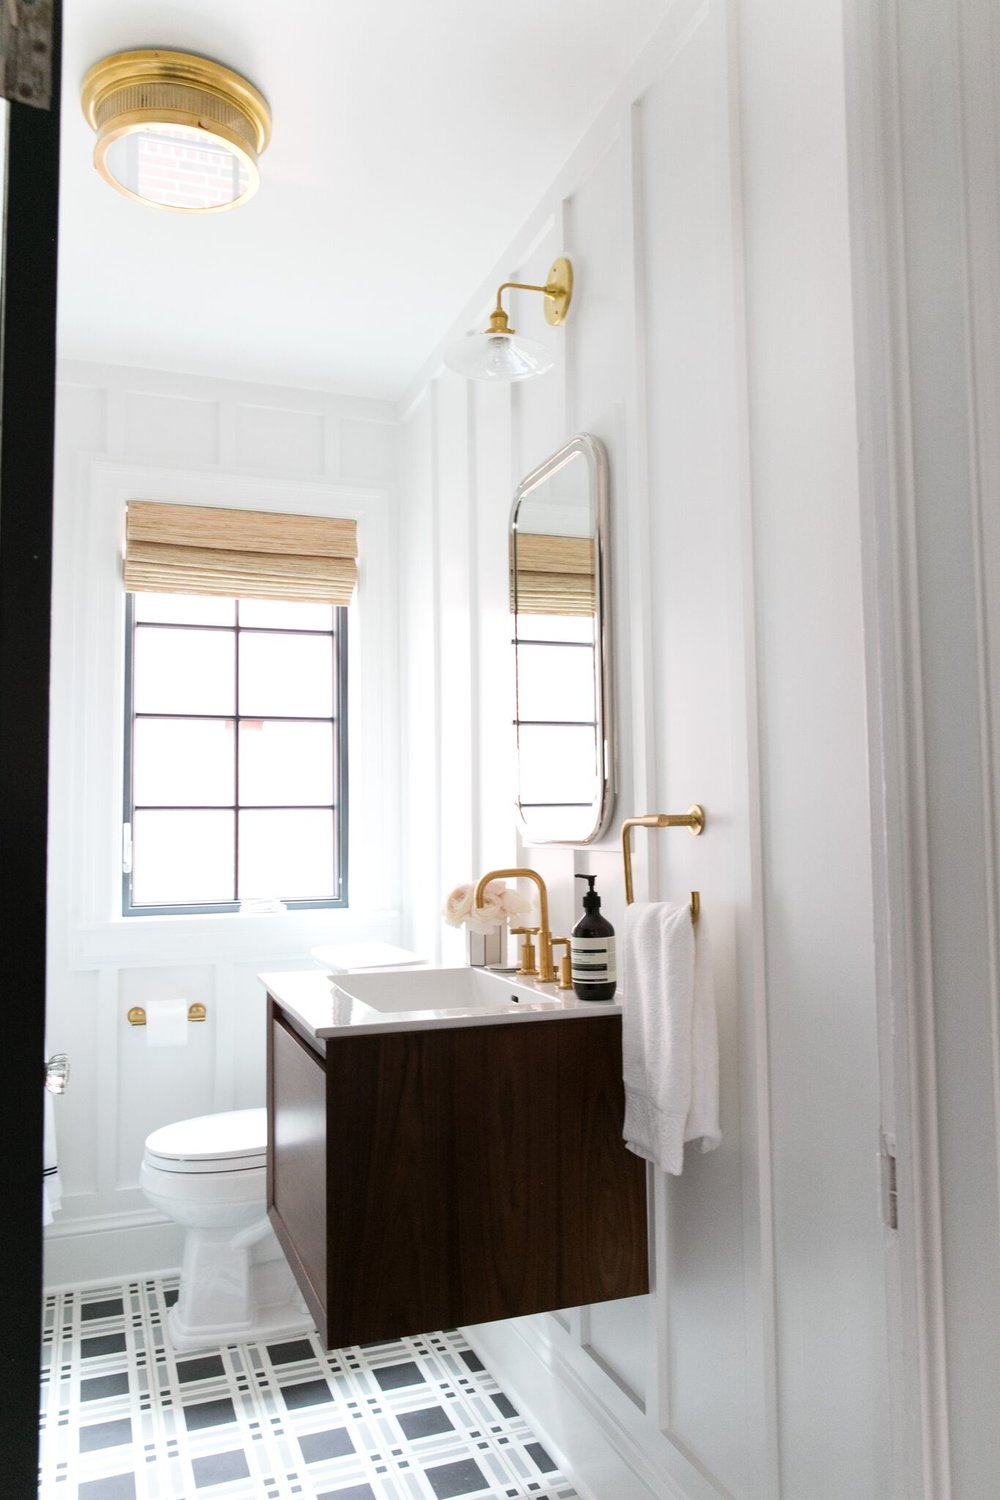 Modern bathroom with patterned title, and floating vanity.